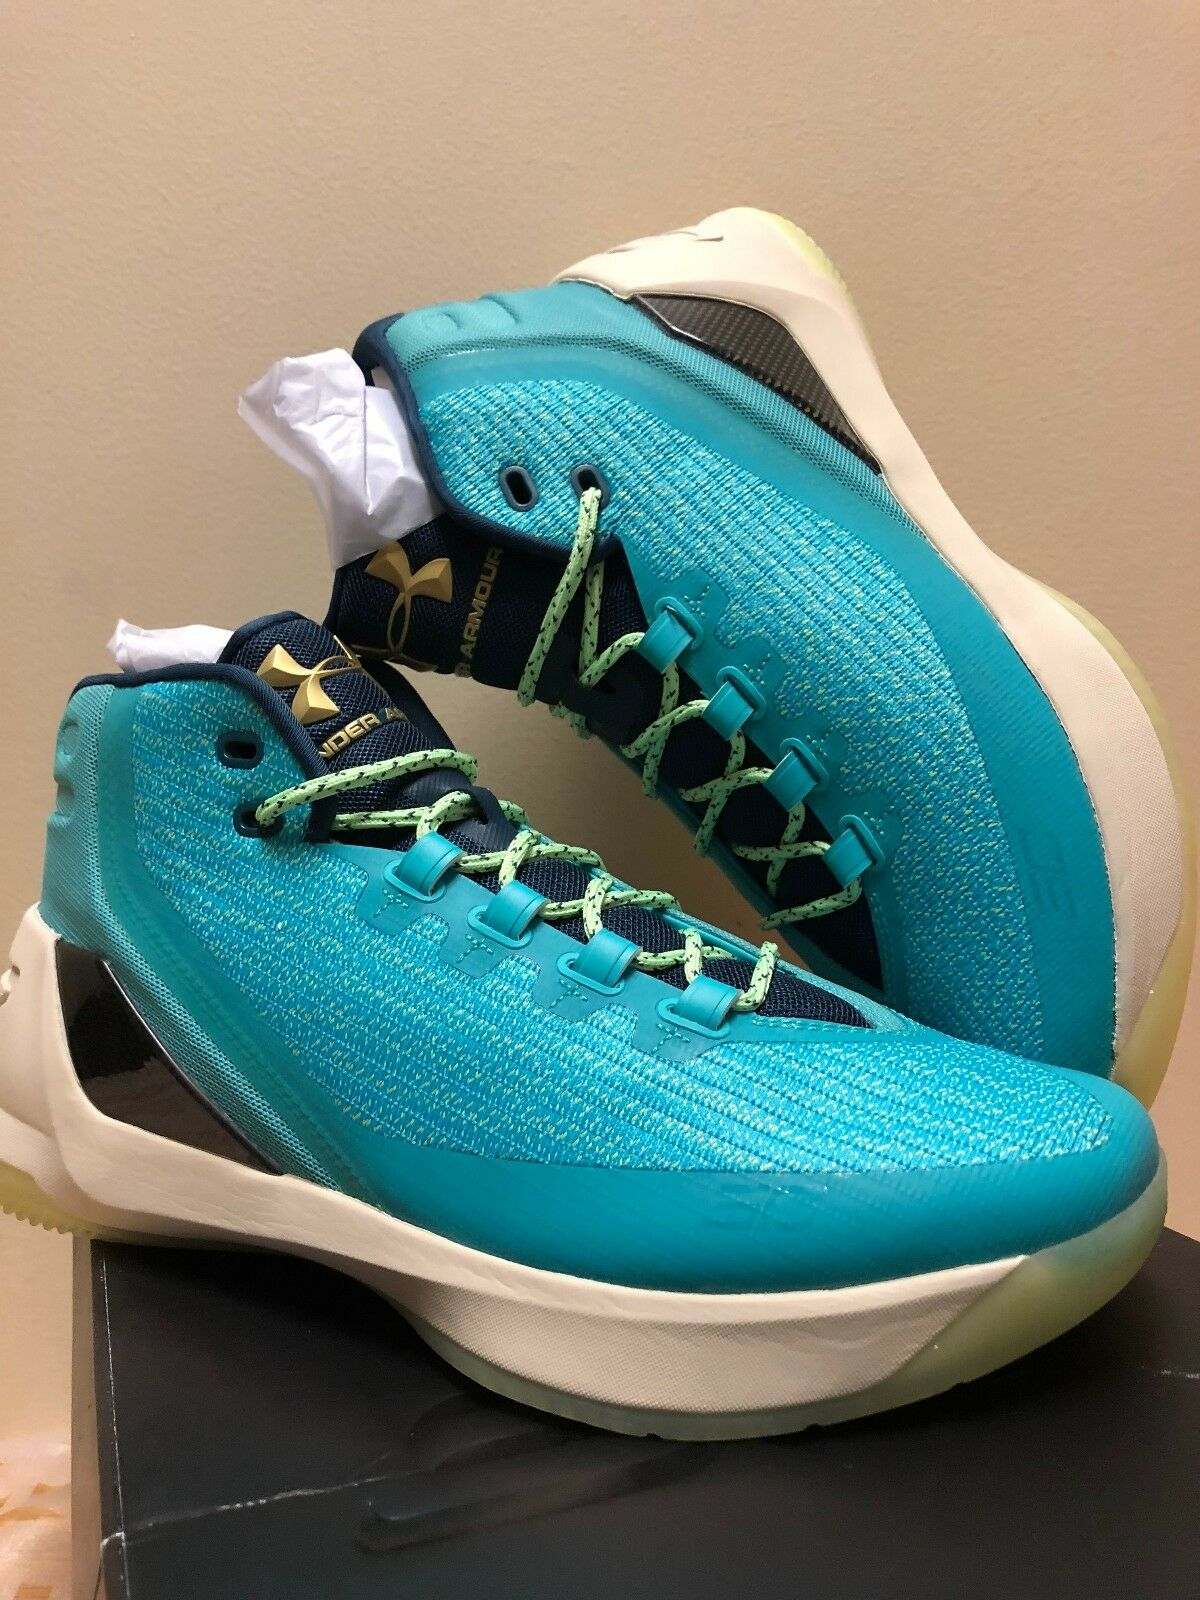 Under Armour Curry Curry Curry 3 Neptune 1269279-370 LIMITED 46ed4c